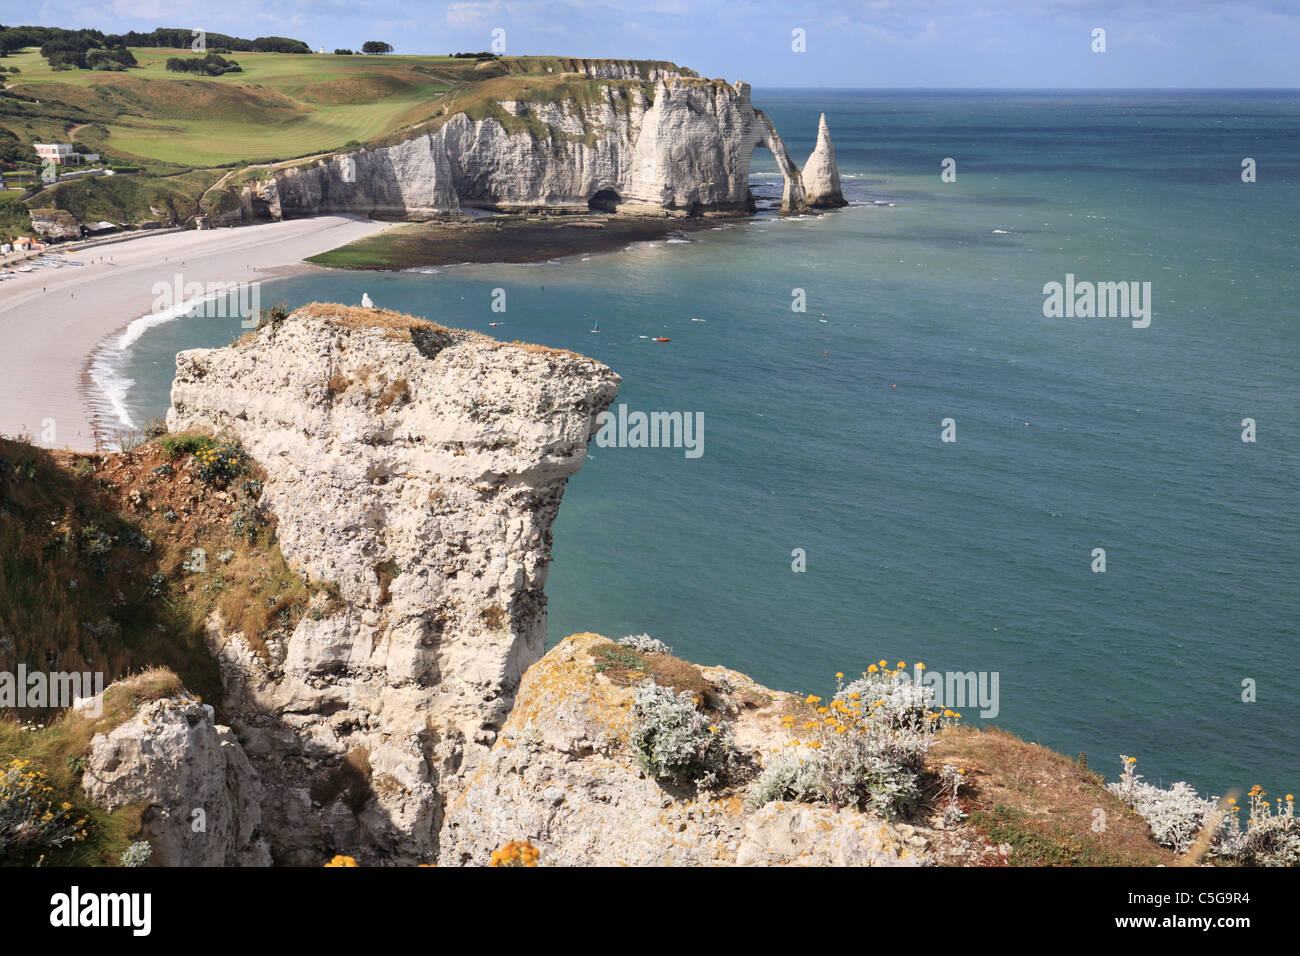 Falaise d'Aval or arch and the Aiguille or needle at Etretat in Normandy, France Stock Photo